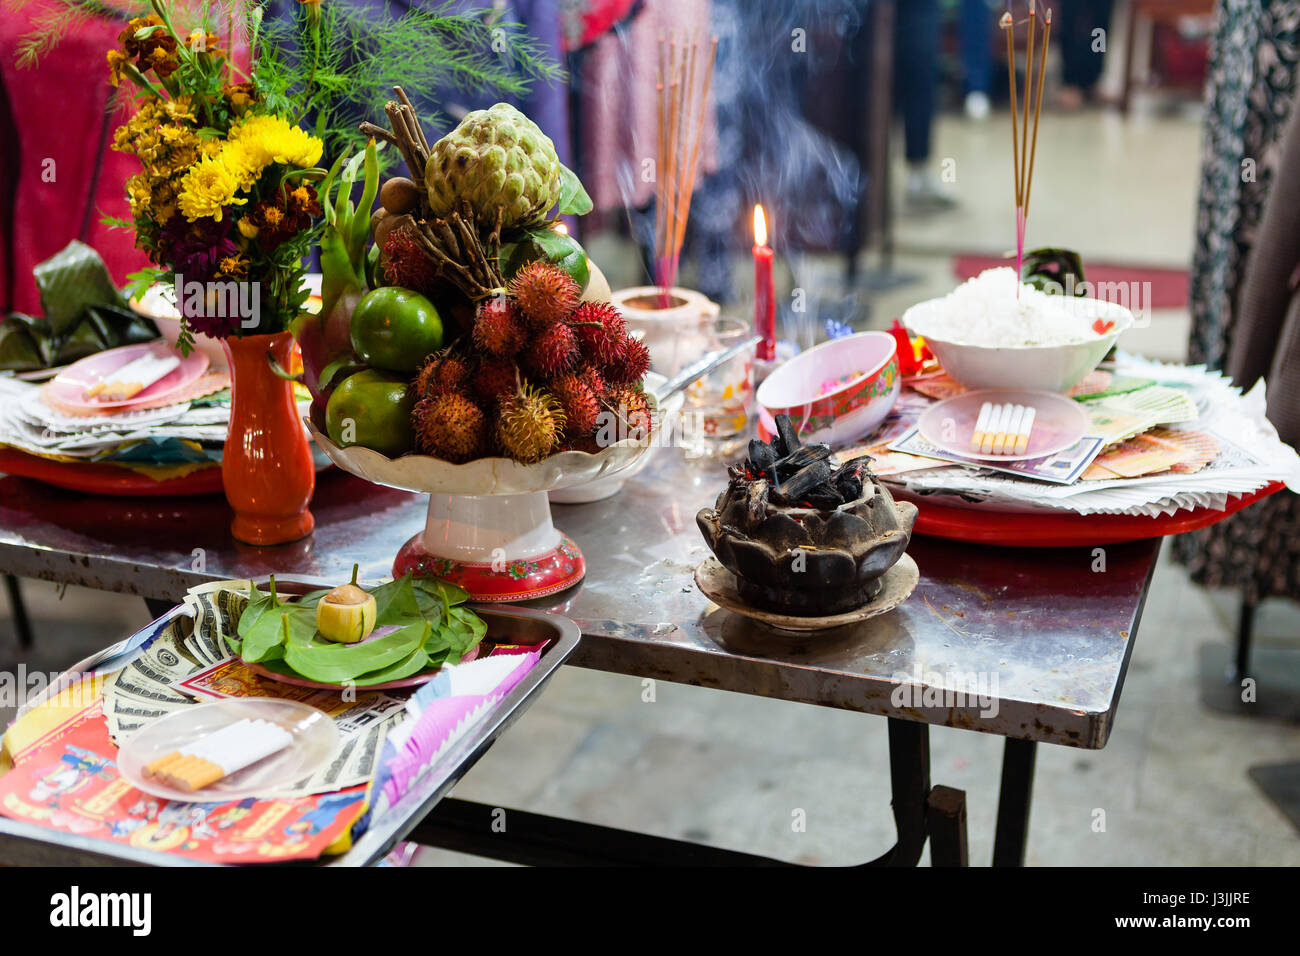 Altar of sacrifice on Full Moon festival. Vietnamese burn incense and put some goods on the table in order to have - Stock Image